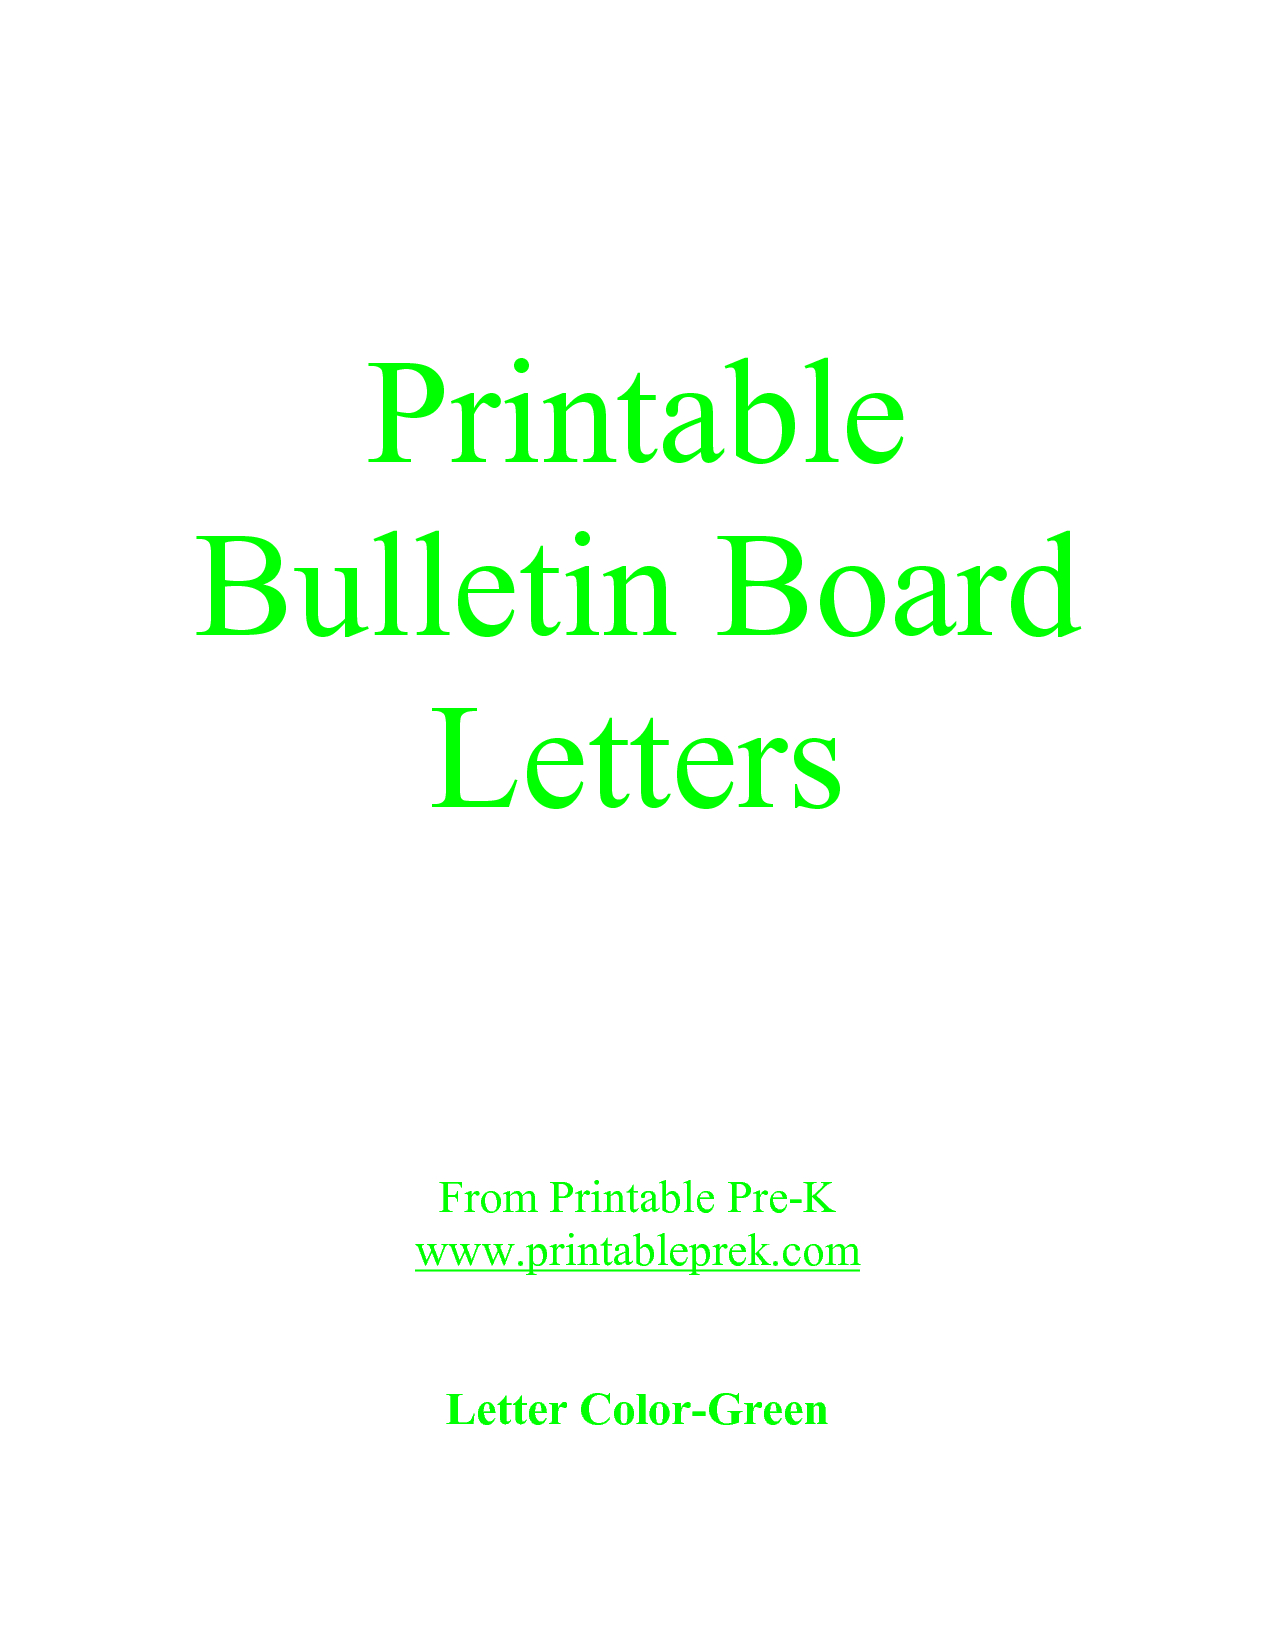 Free Printable Letter Templates For Bulletin Boards | Template To - Free Printable Bulletin Board Letters